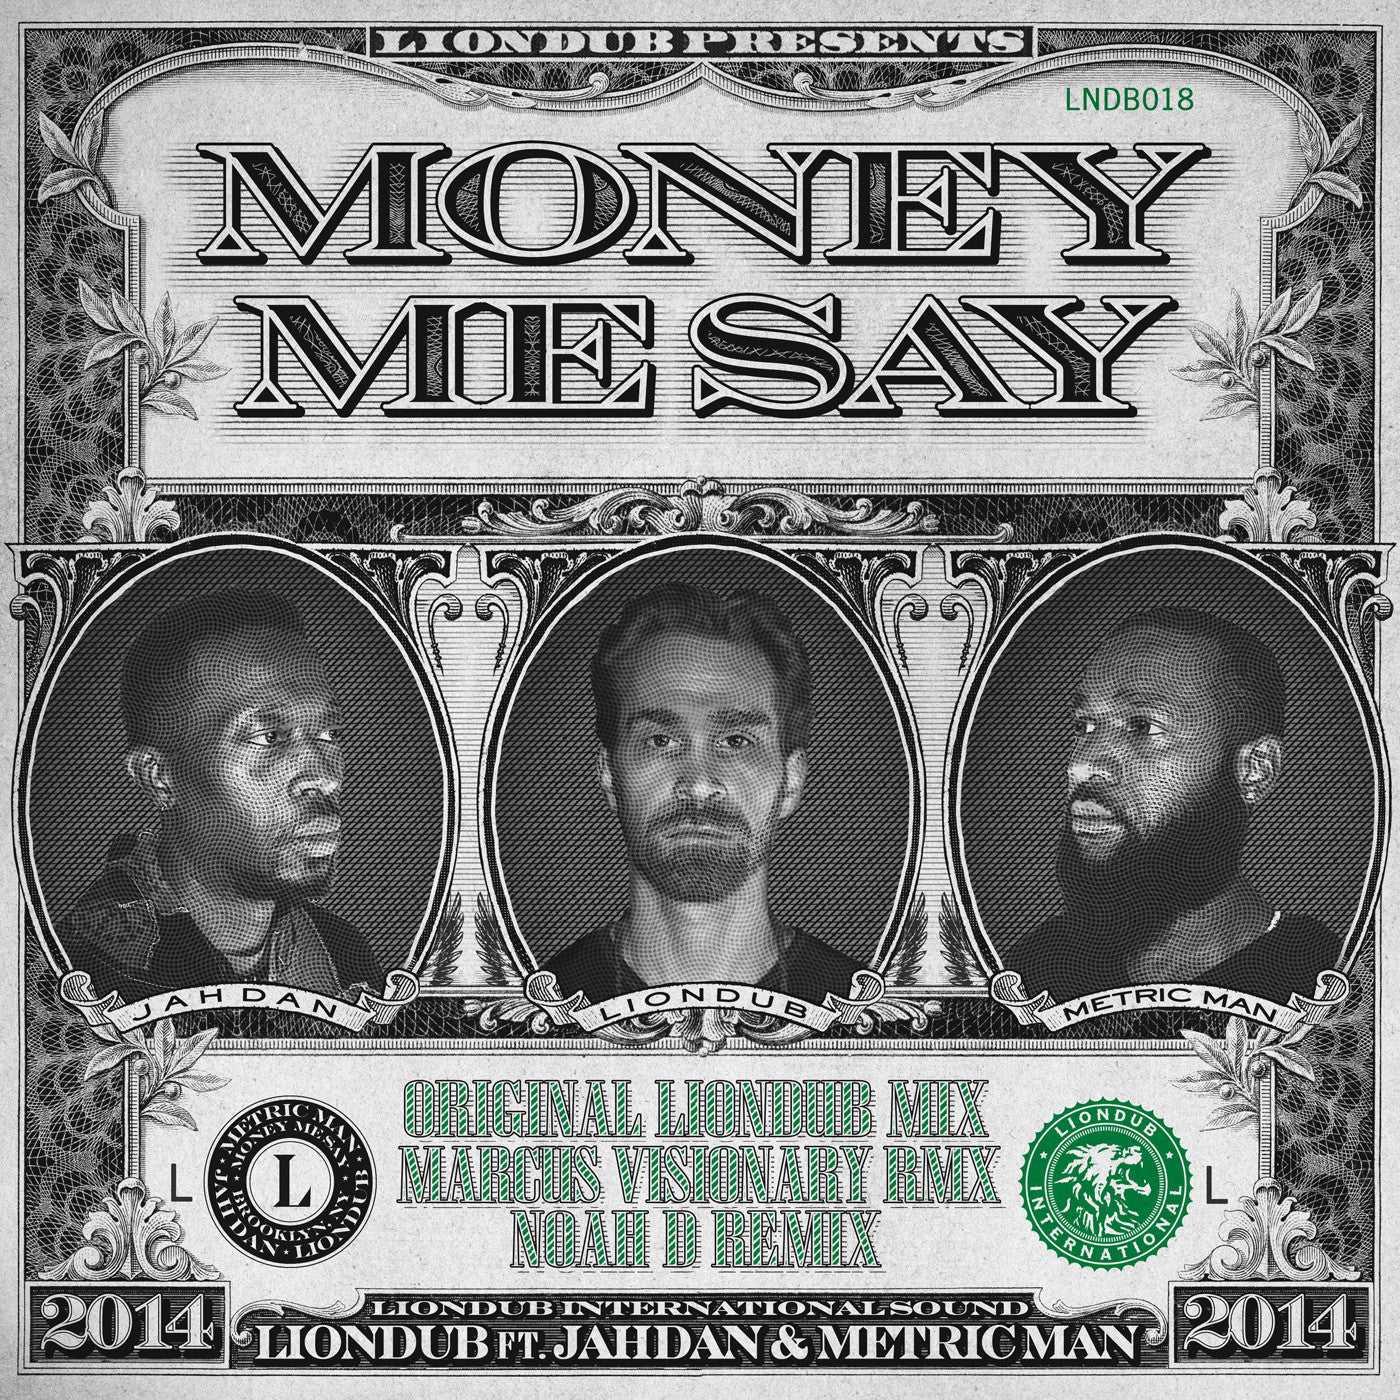 Liondub Ft. Jahdan & Metric Man - Money Me Say - Unearthed Sounds